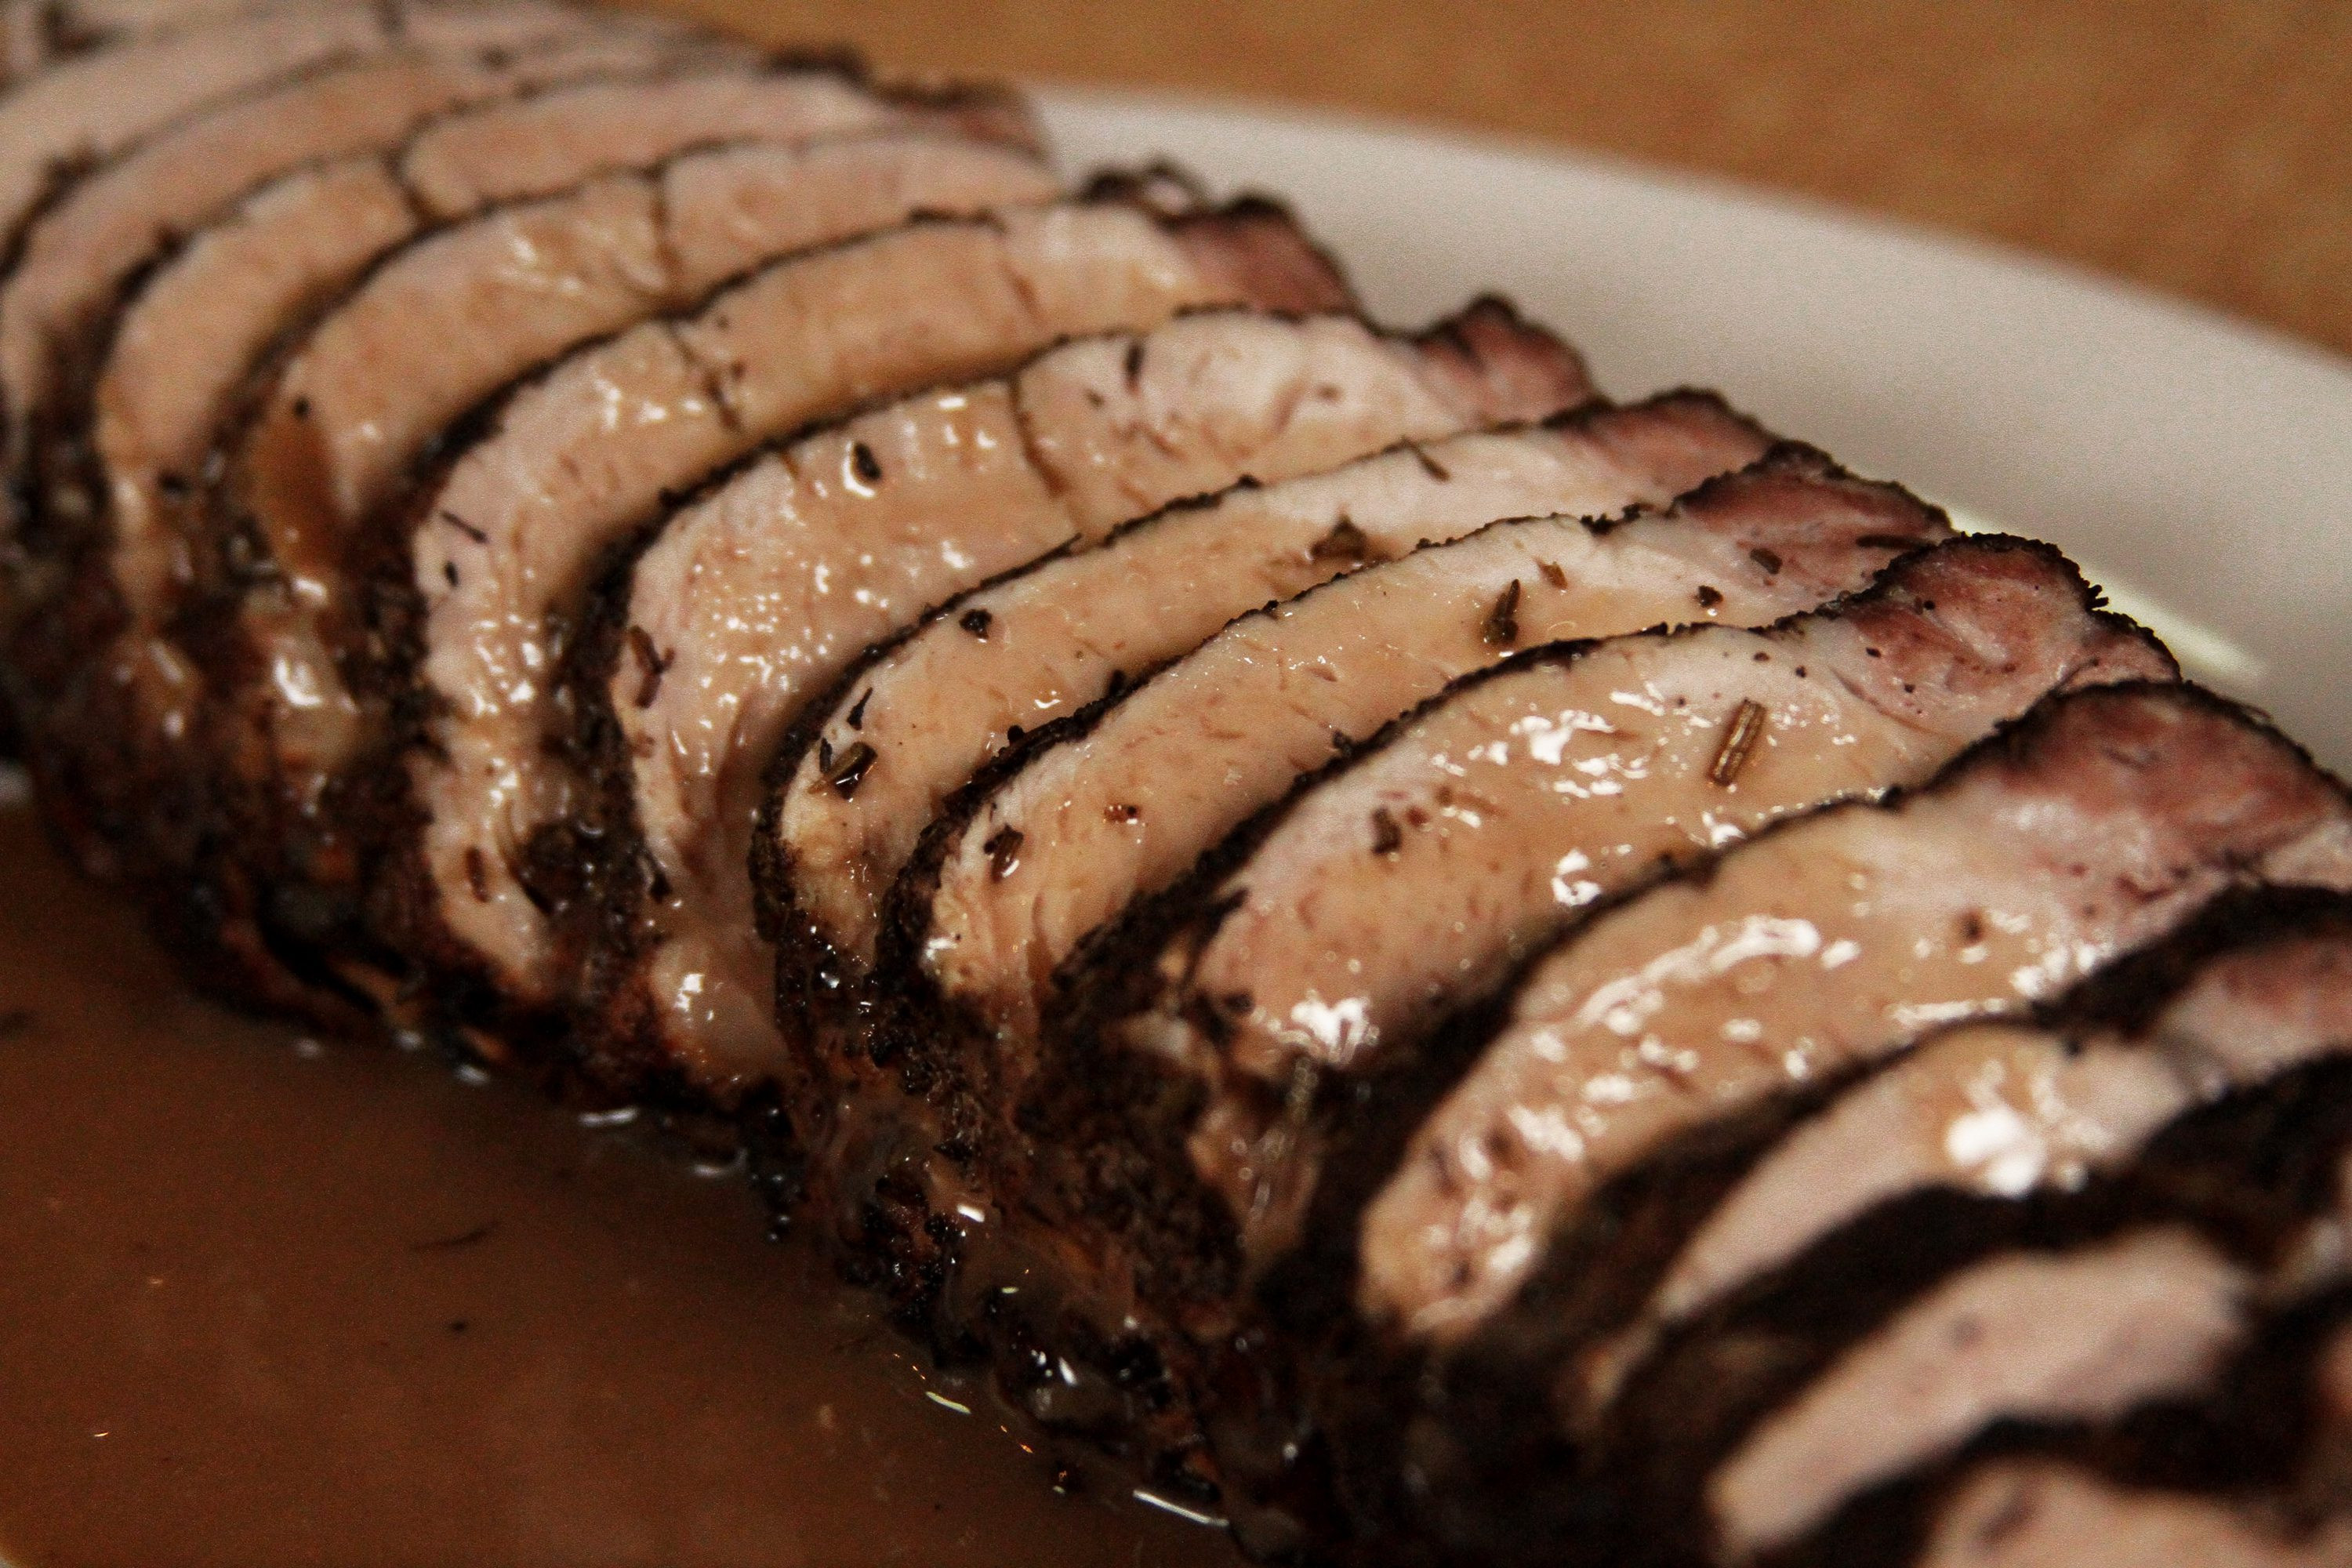 Cooking Pork Loin Roast  How to Cook a Pork Loin Roast in a Crock Pot with